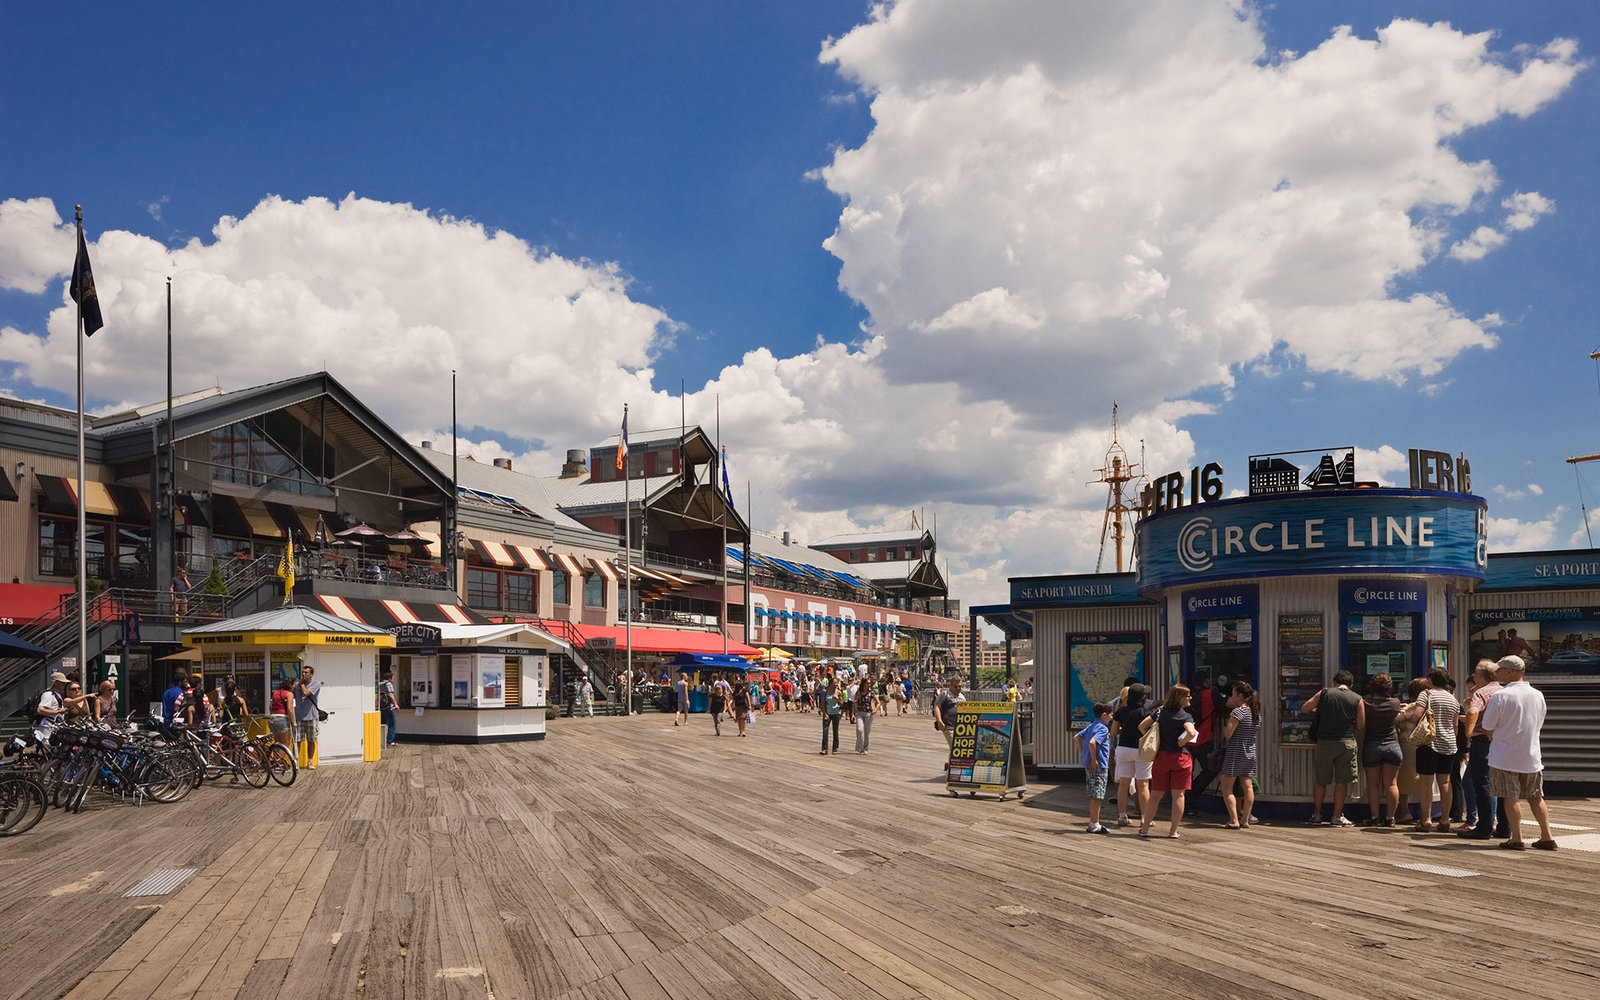 In York South Street Seaport Travel